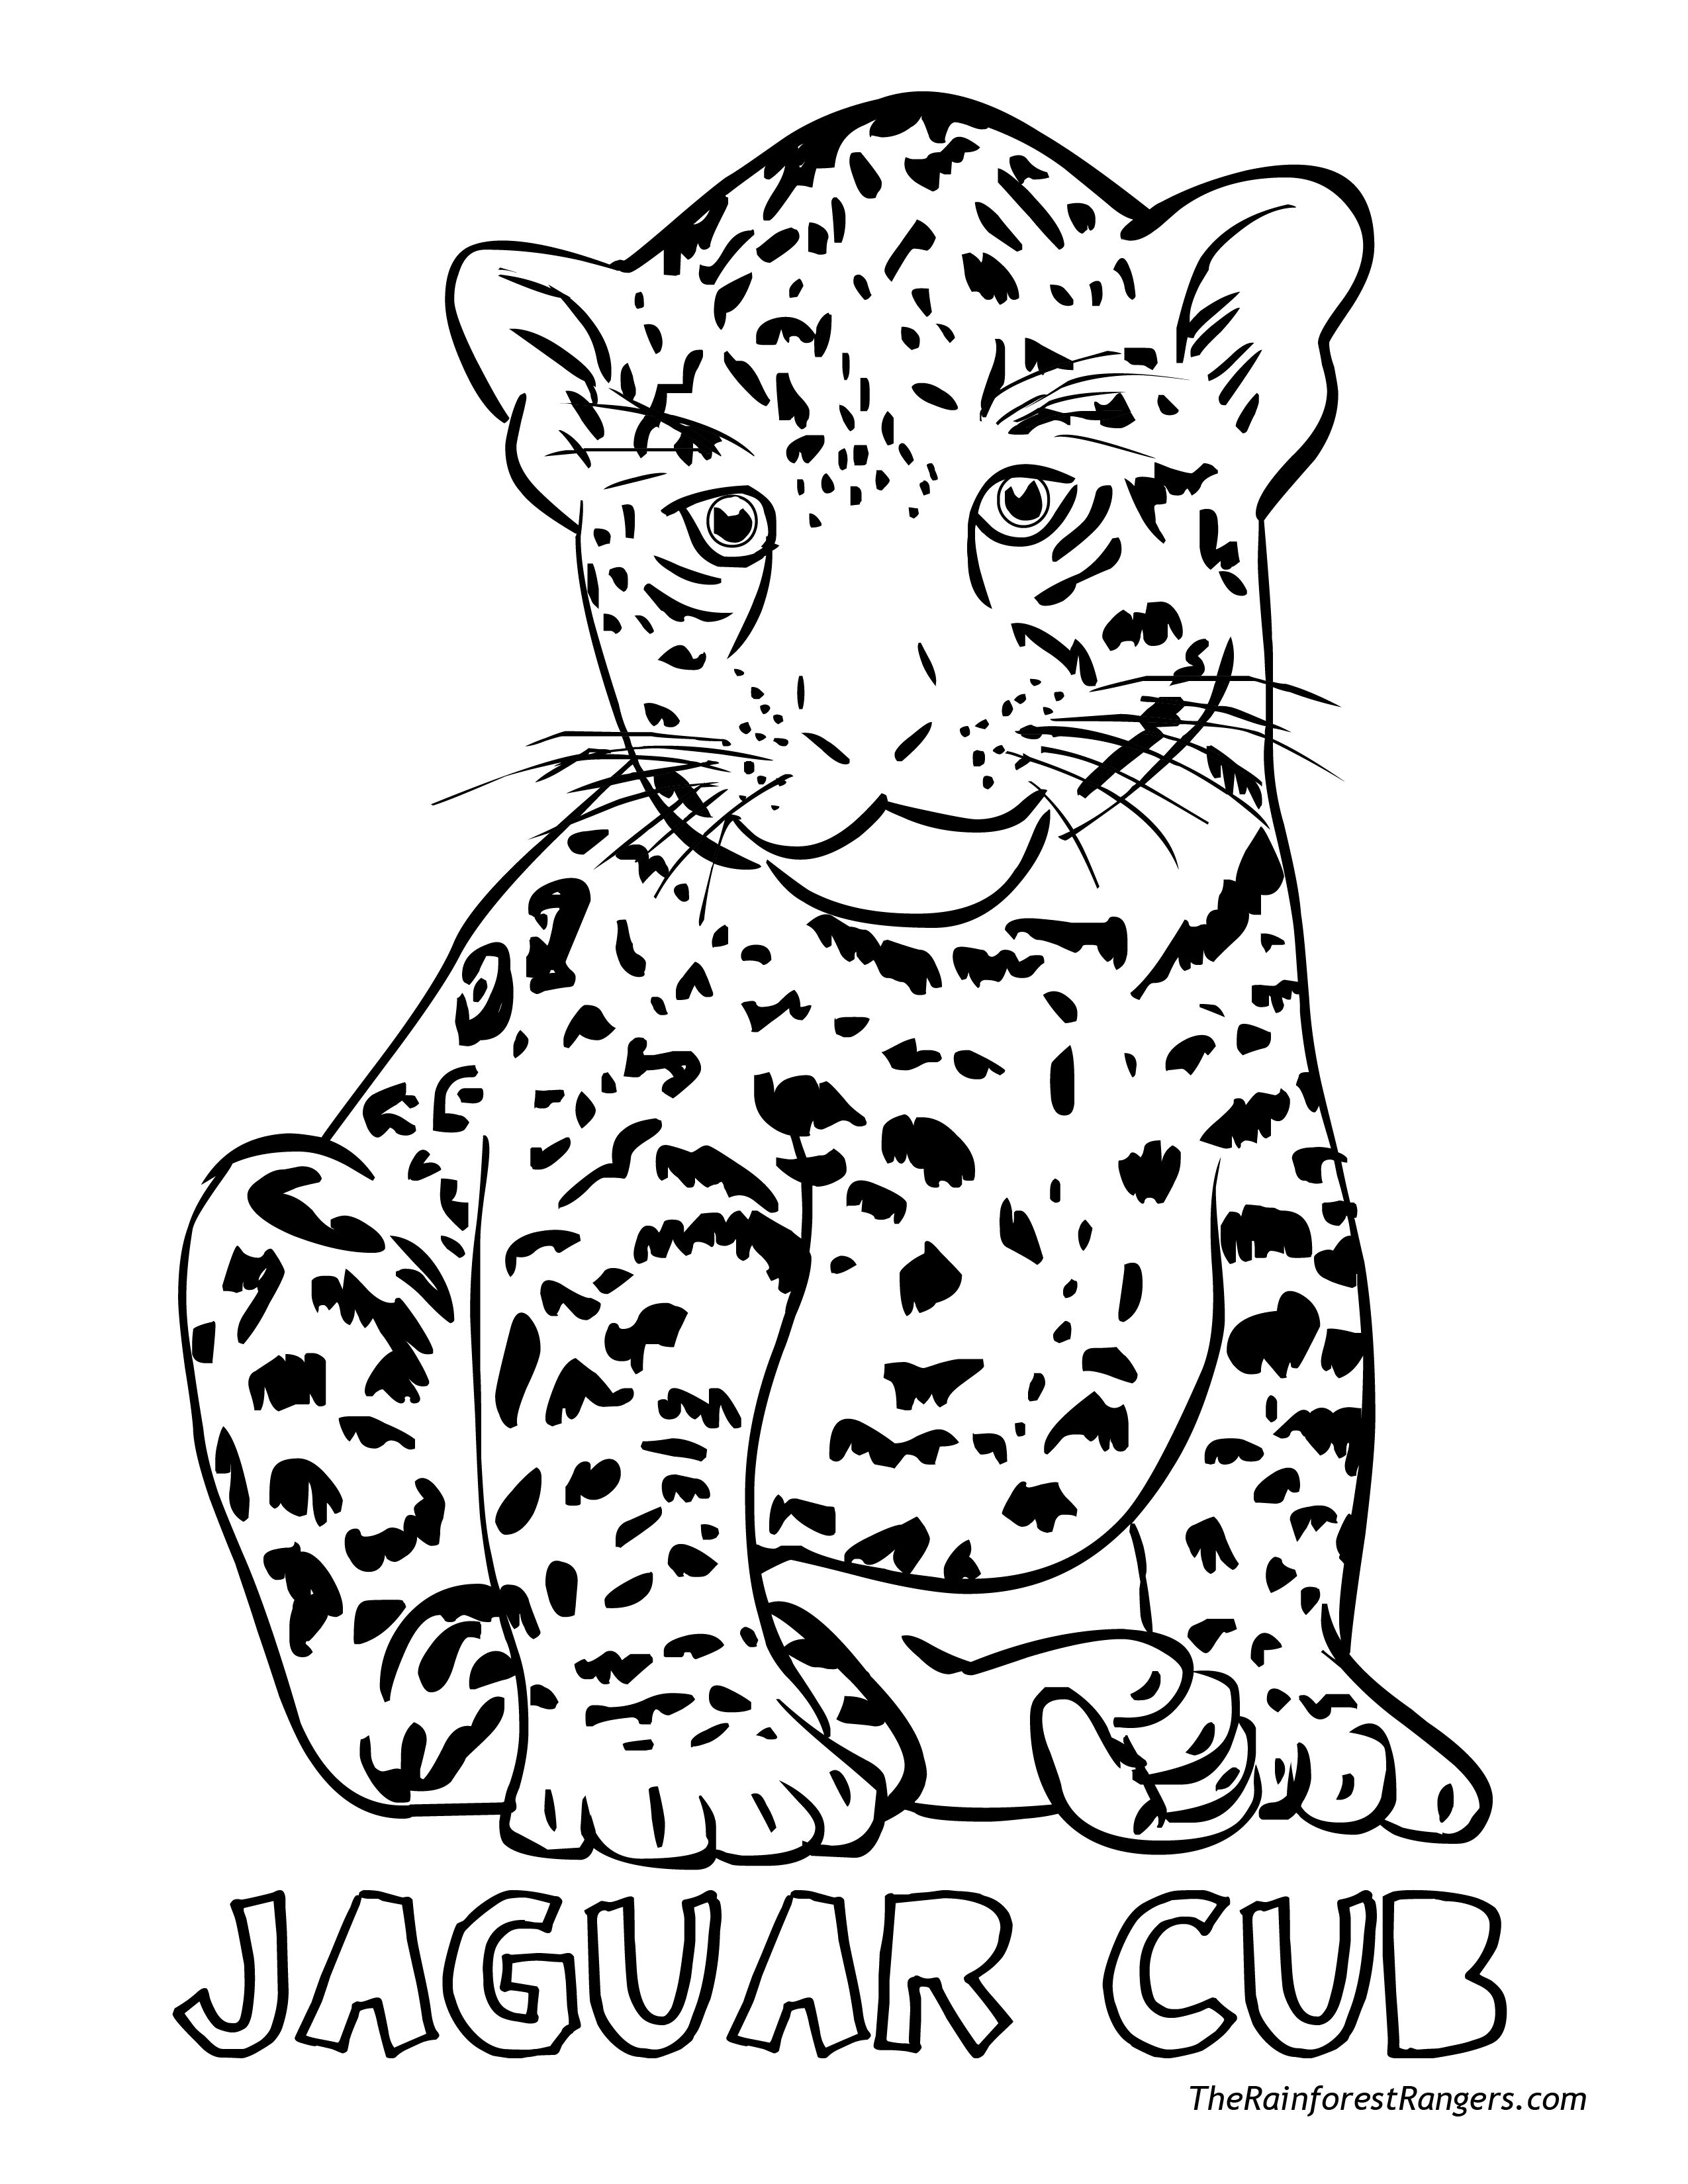 Jacksonville Jaguars Coloring Pages At Getcolorings